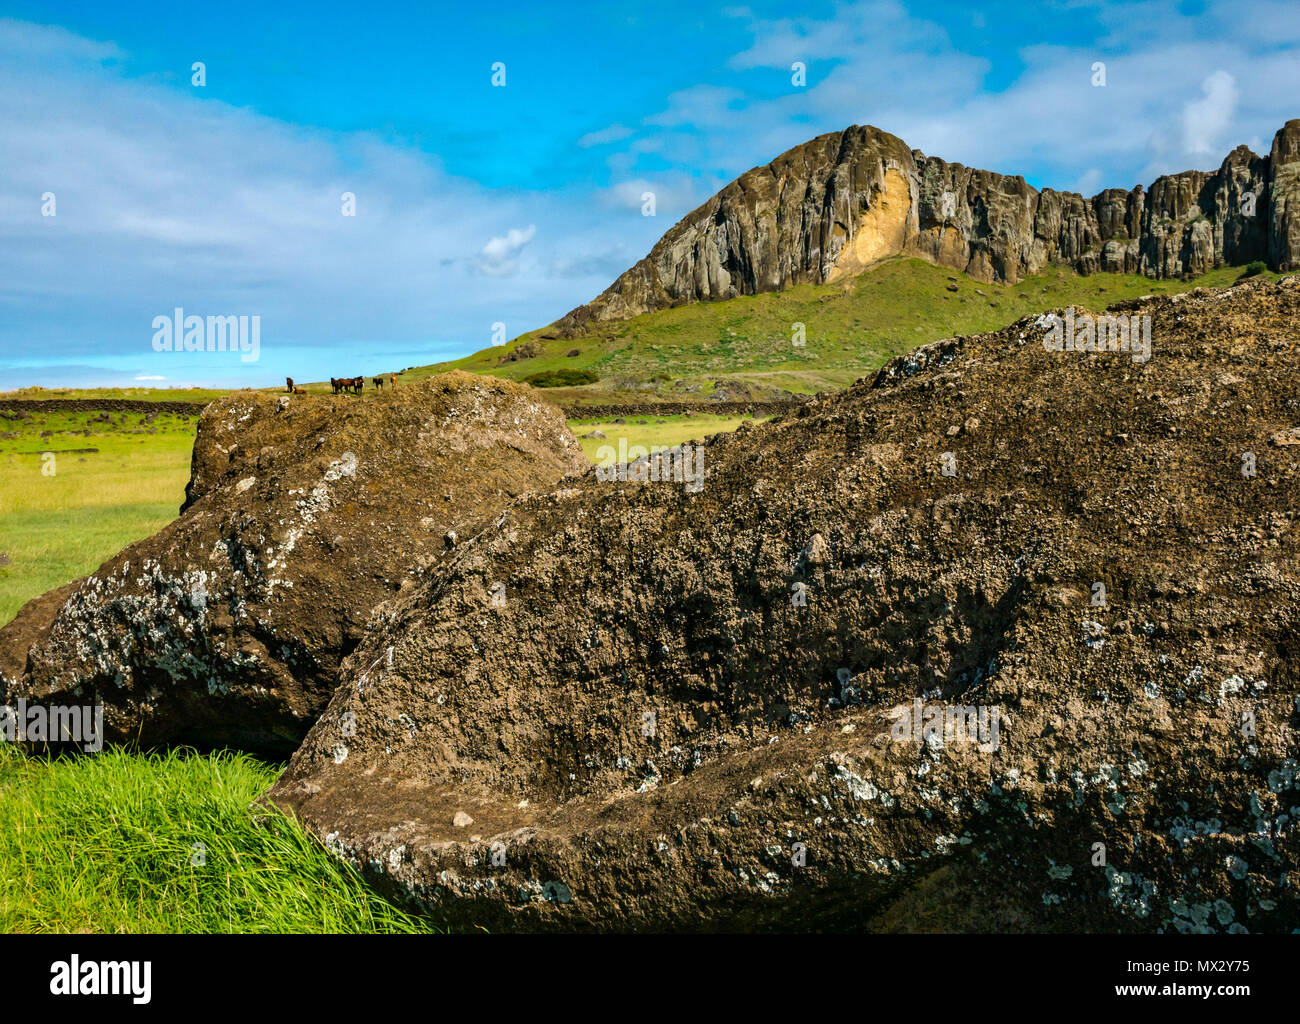 Fallen Moai head, Tongariki archaeological site with steep cliff of Rano Raraku extinct volcano crater, site of Moai head quarry, Easter Island, Chile - Stock Image